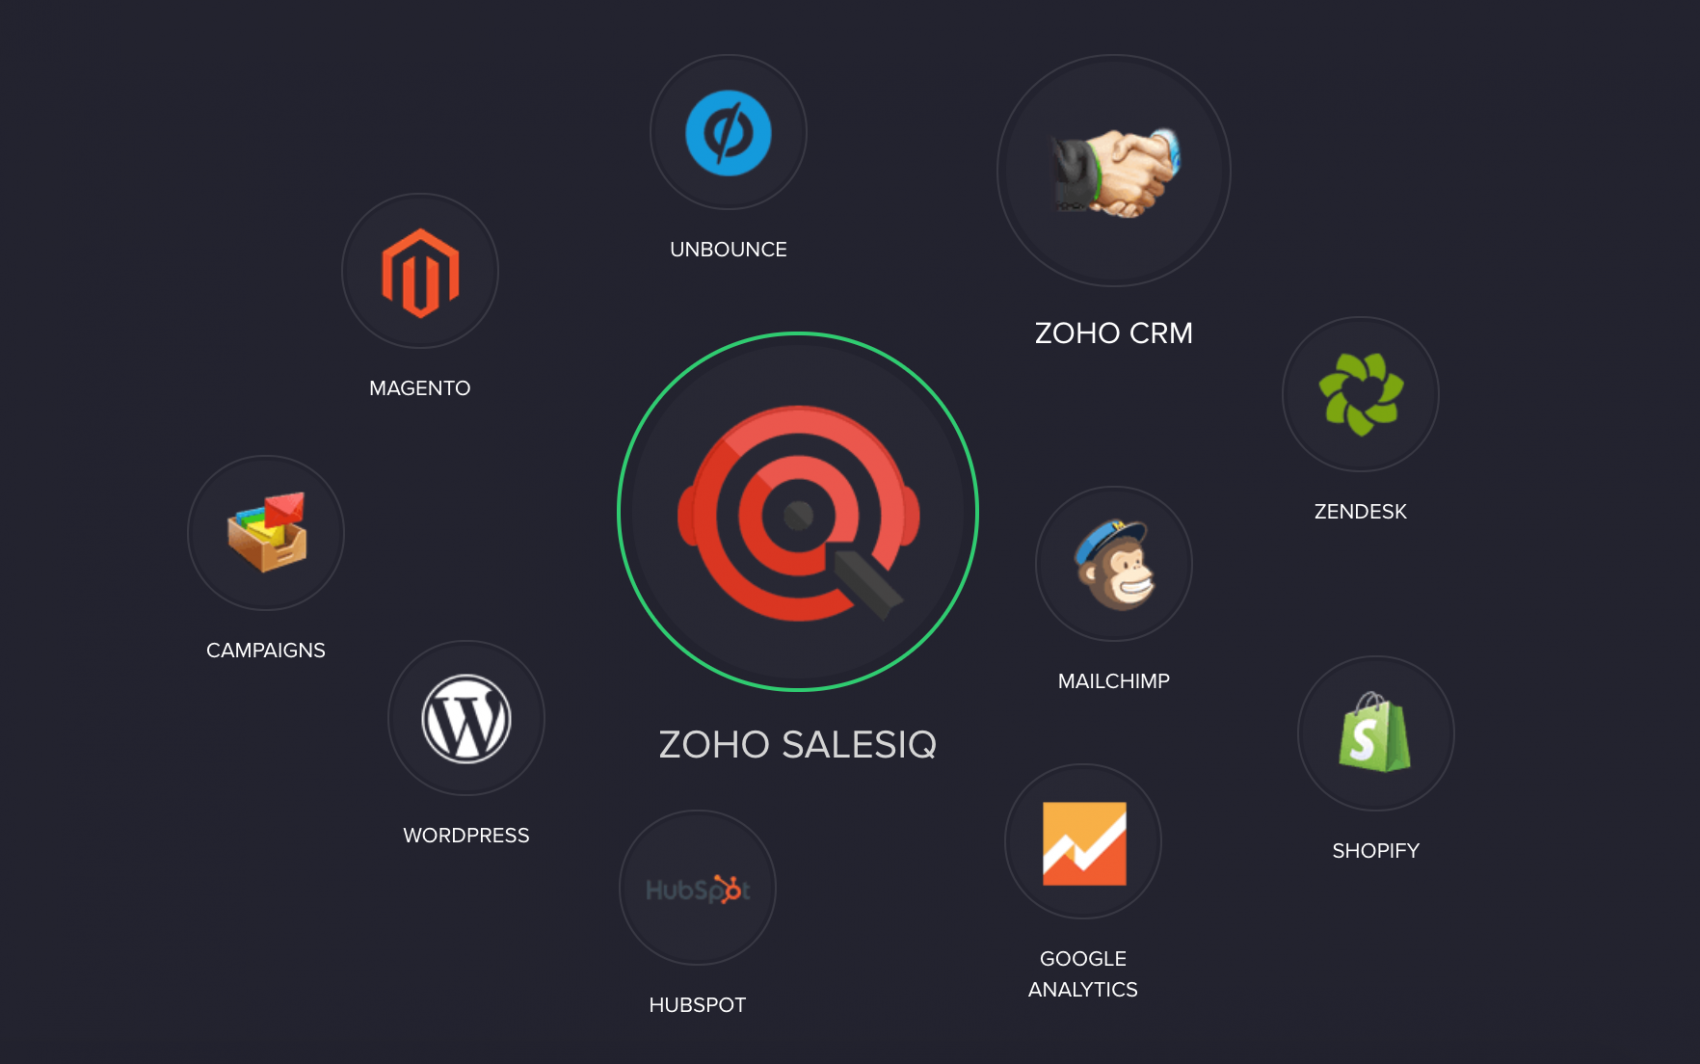 Integrations - Zoho SalesIQ